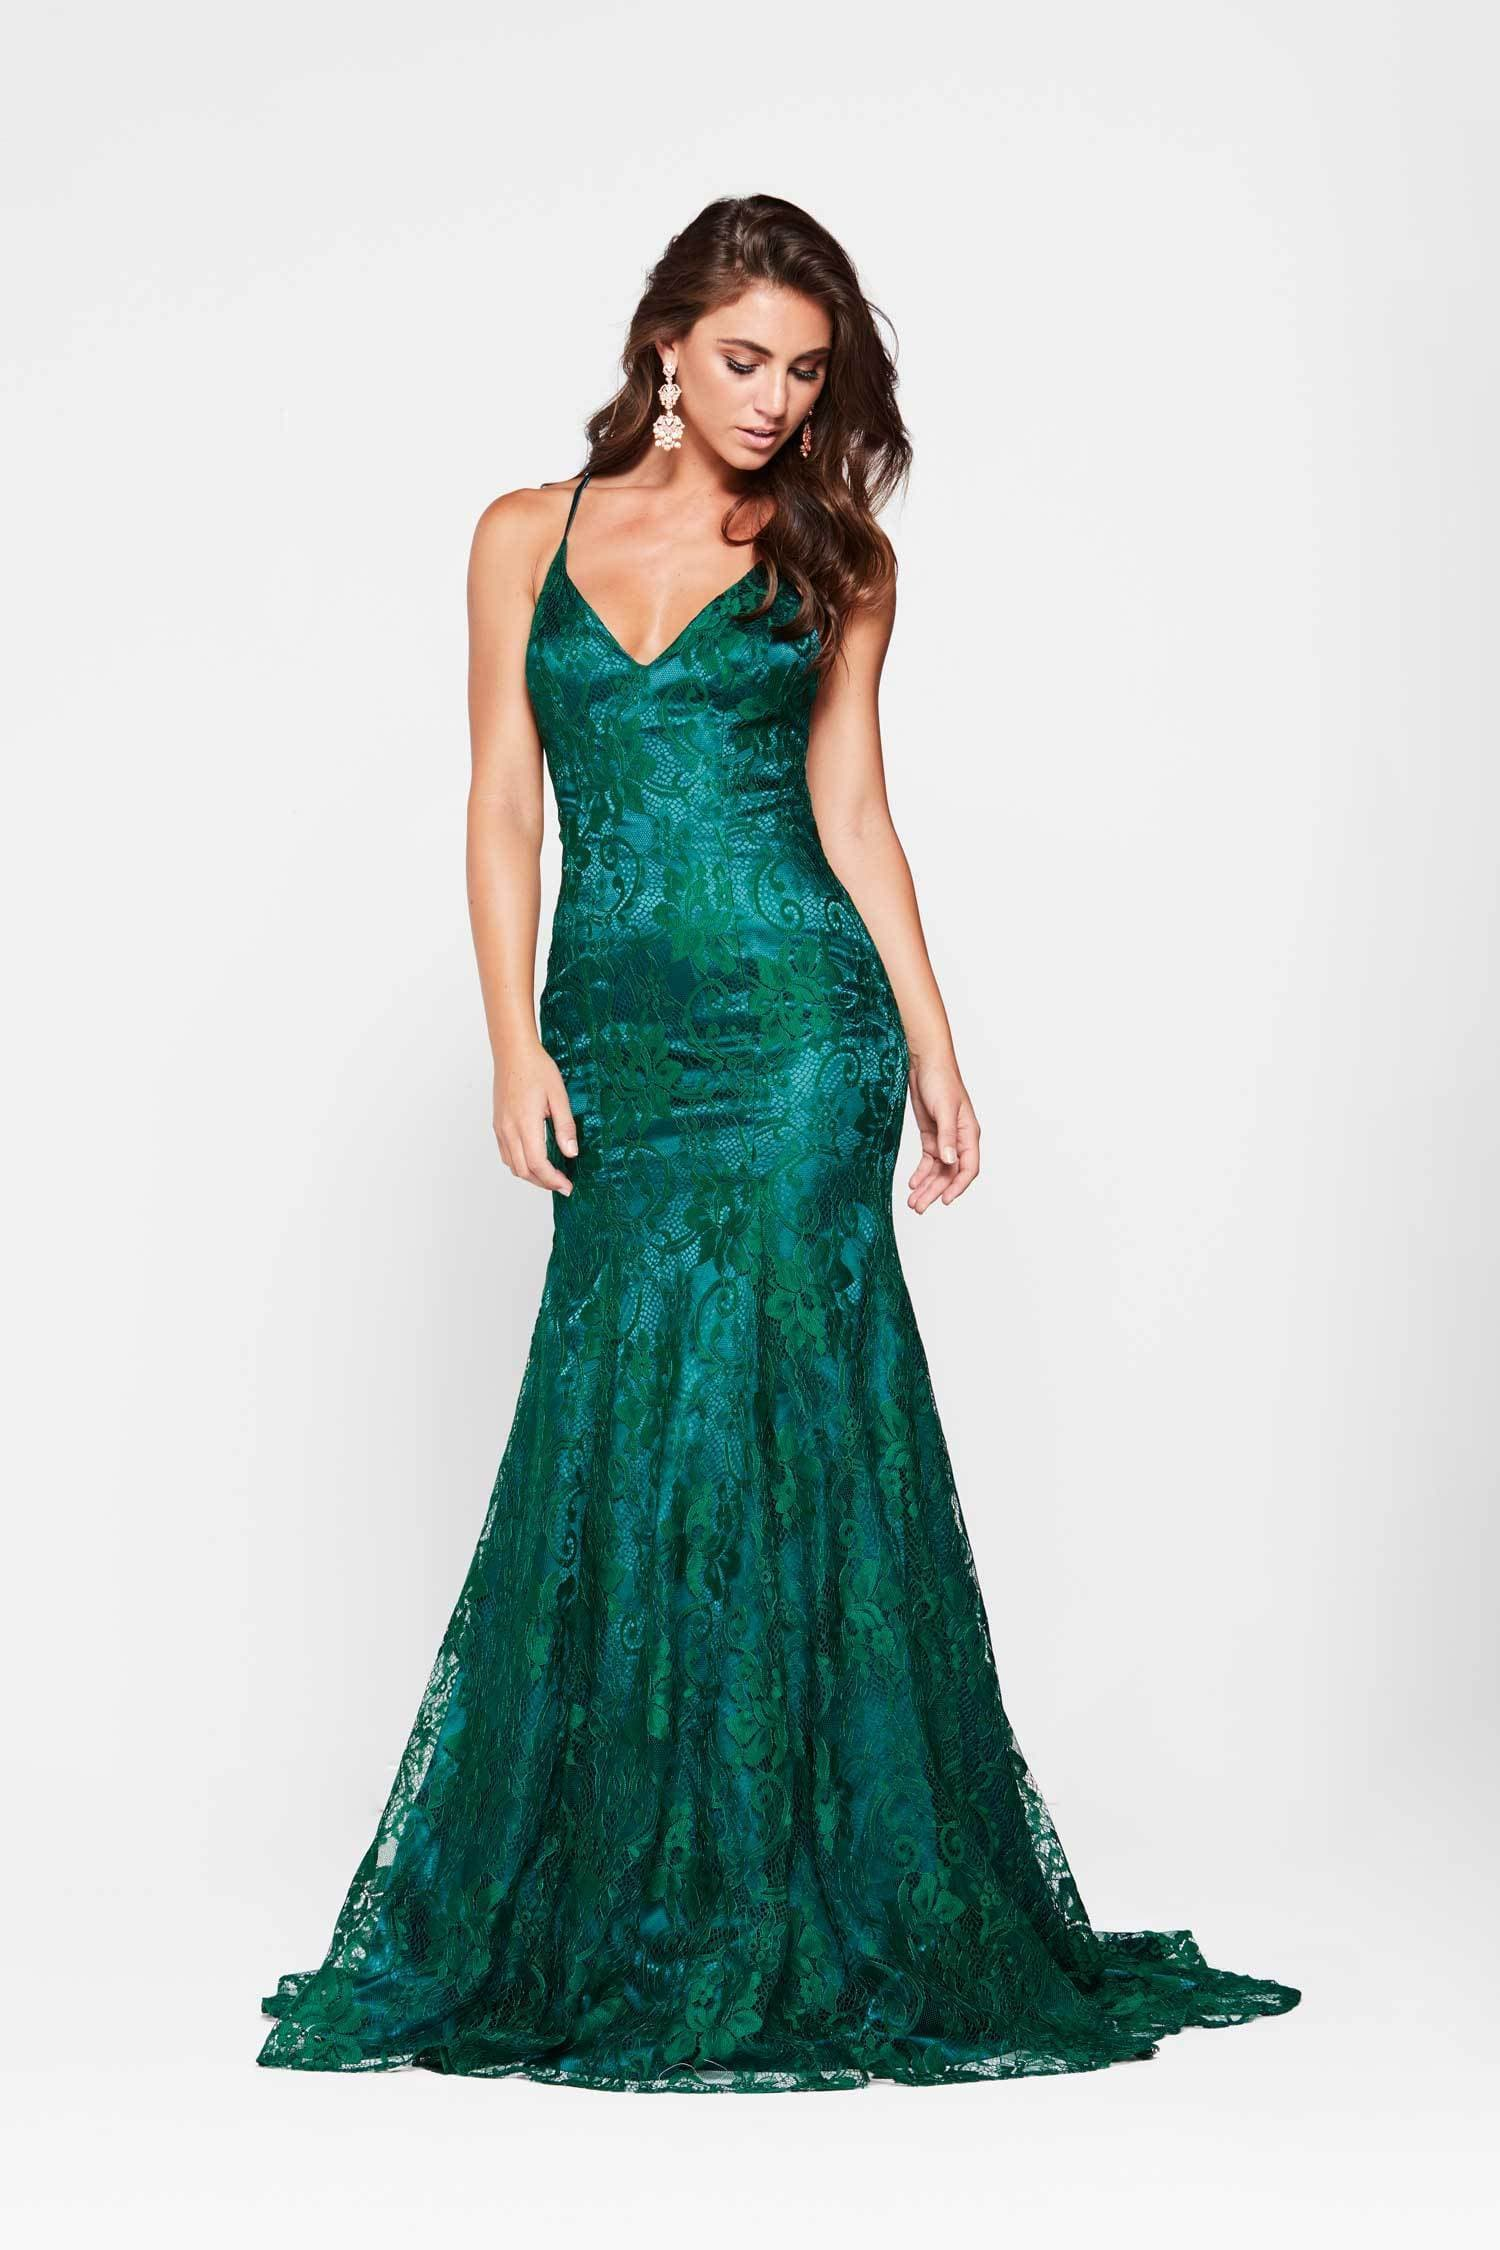 A&N Luxe Aisha Gown - Emerald Lace Up Mermaid Gown with Low Back